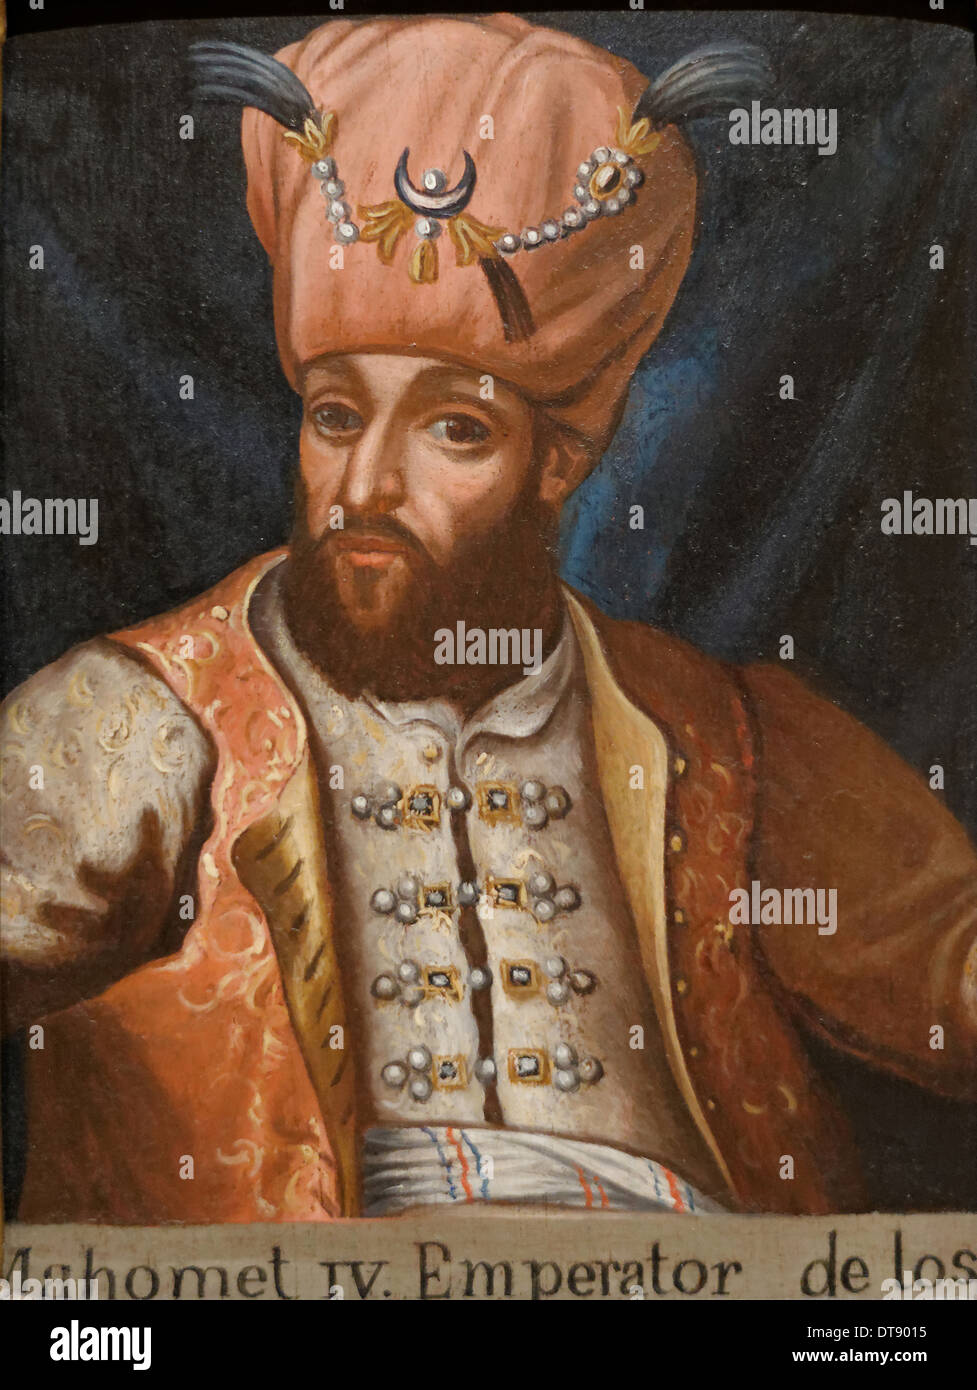 Mehmed IV (1642-1693), Sultan of the Ottoman Empire, 17th century. Artist: Anonymous - Stock Image